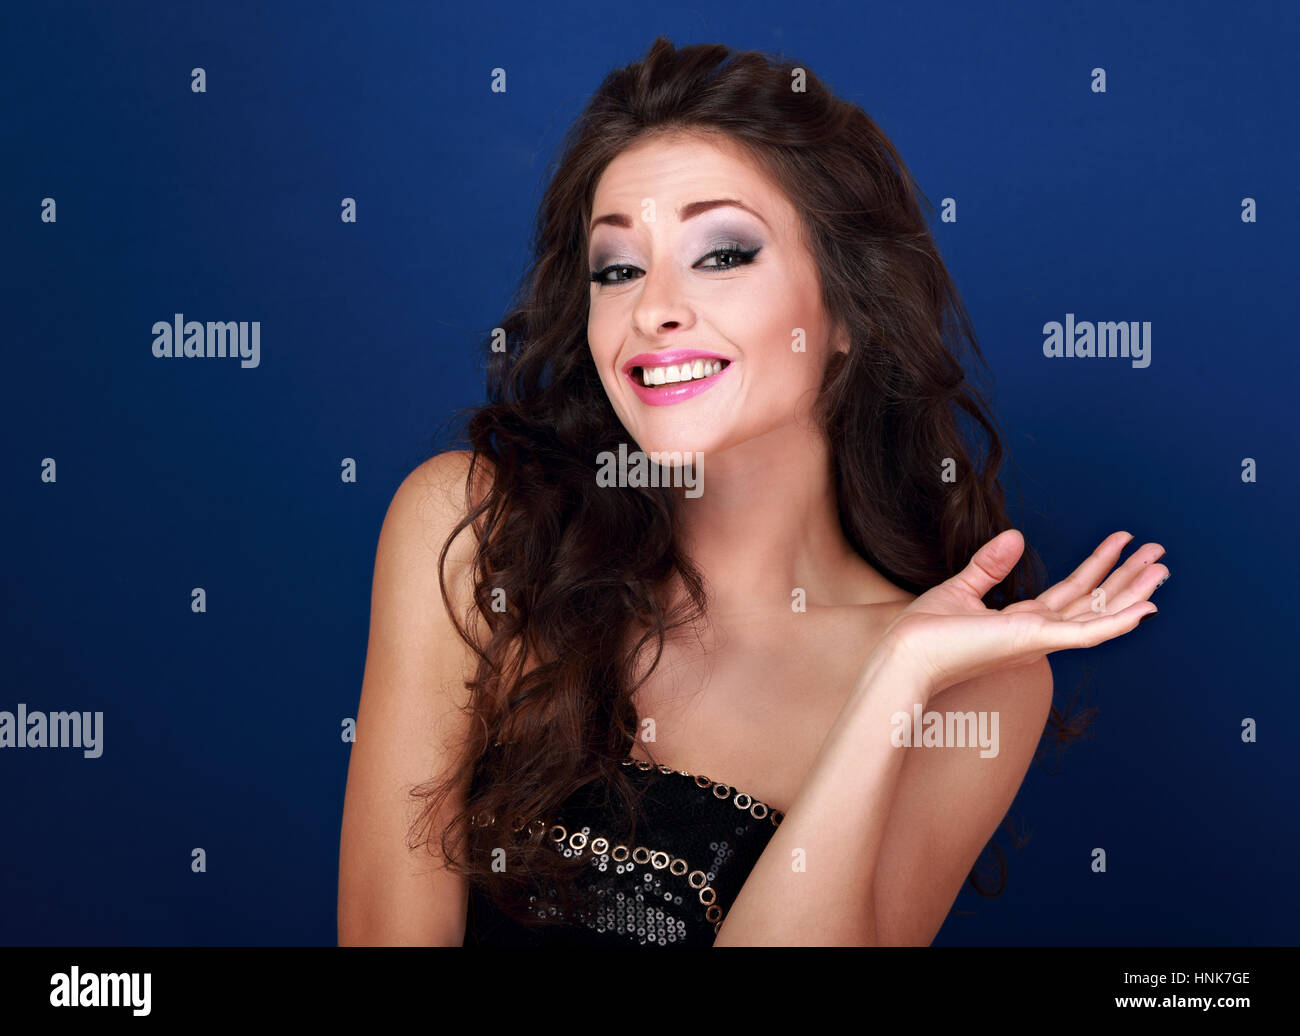 Excited beautiful makeup woman grimacing and showing oops sign her hand on blue background. Closeup portrait - Stock Image